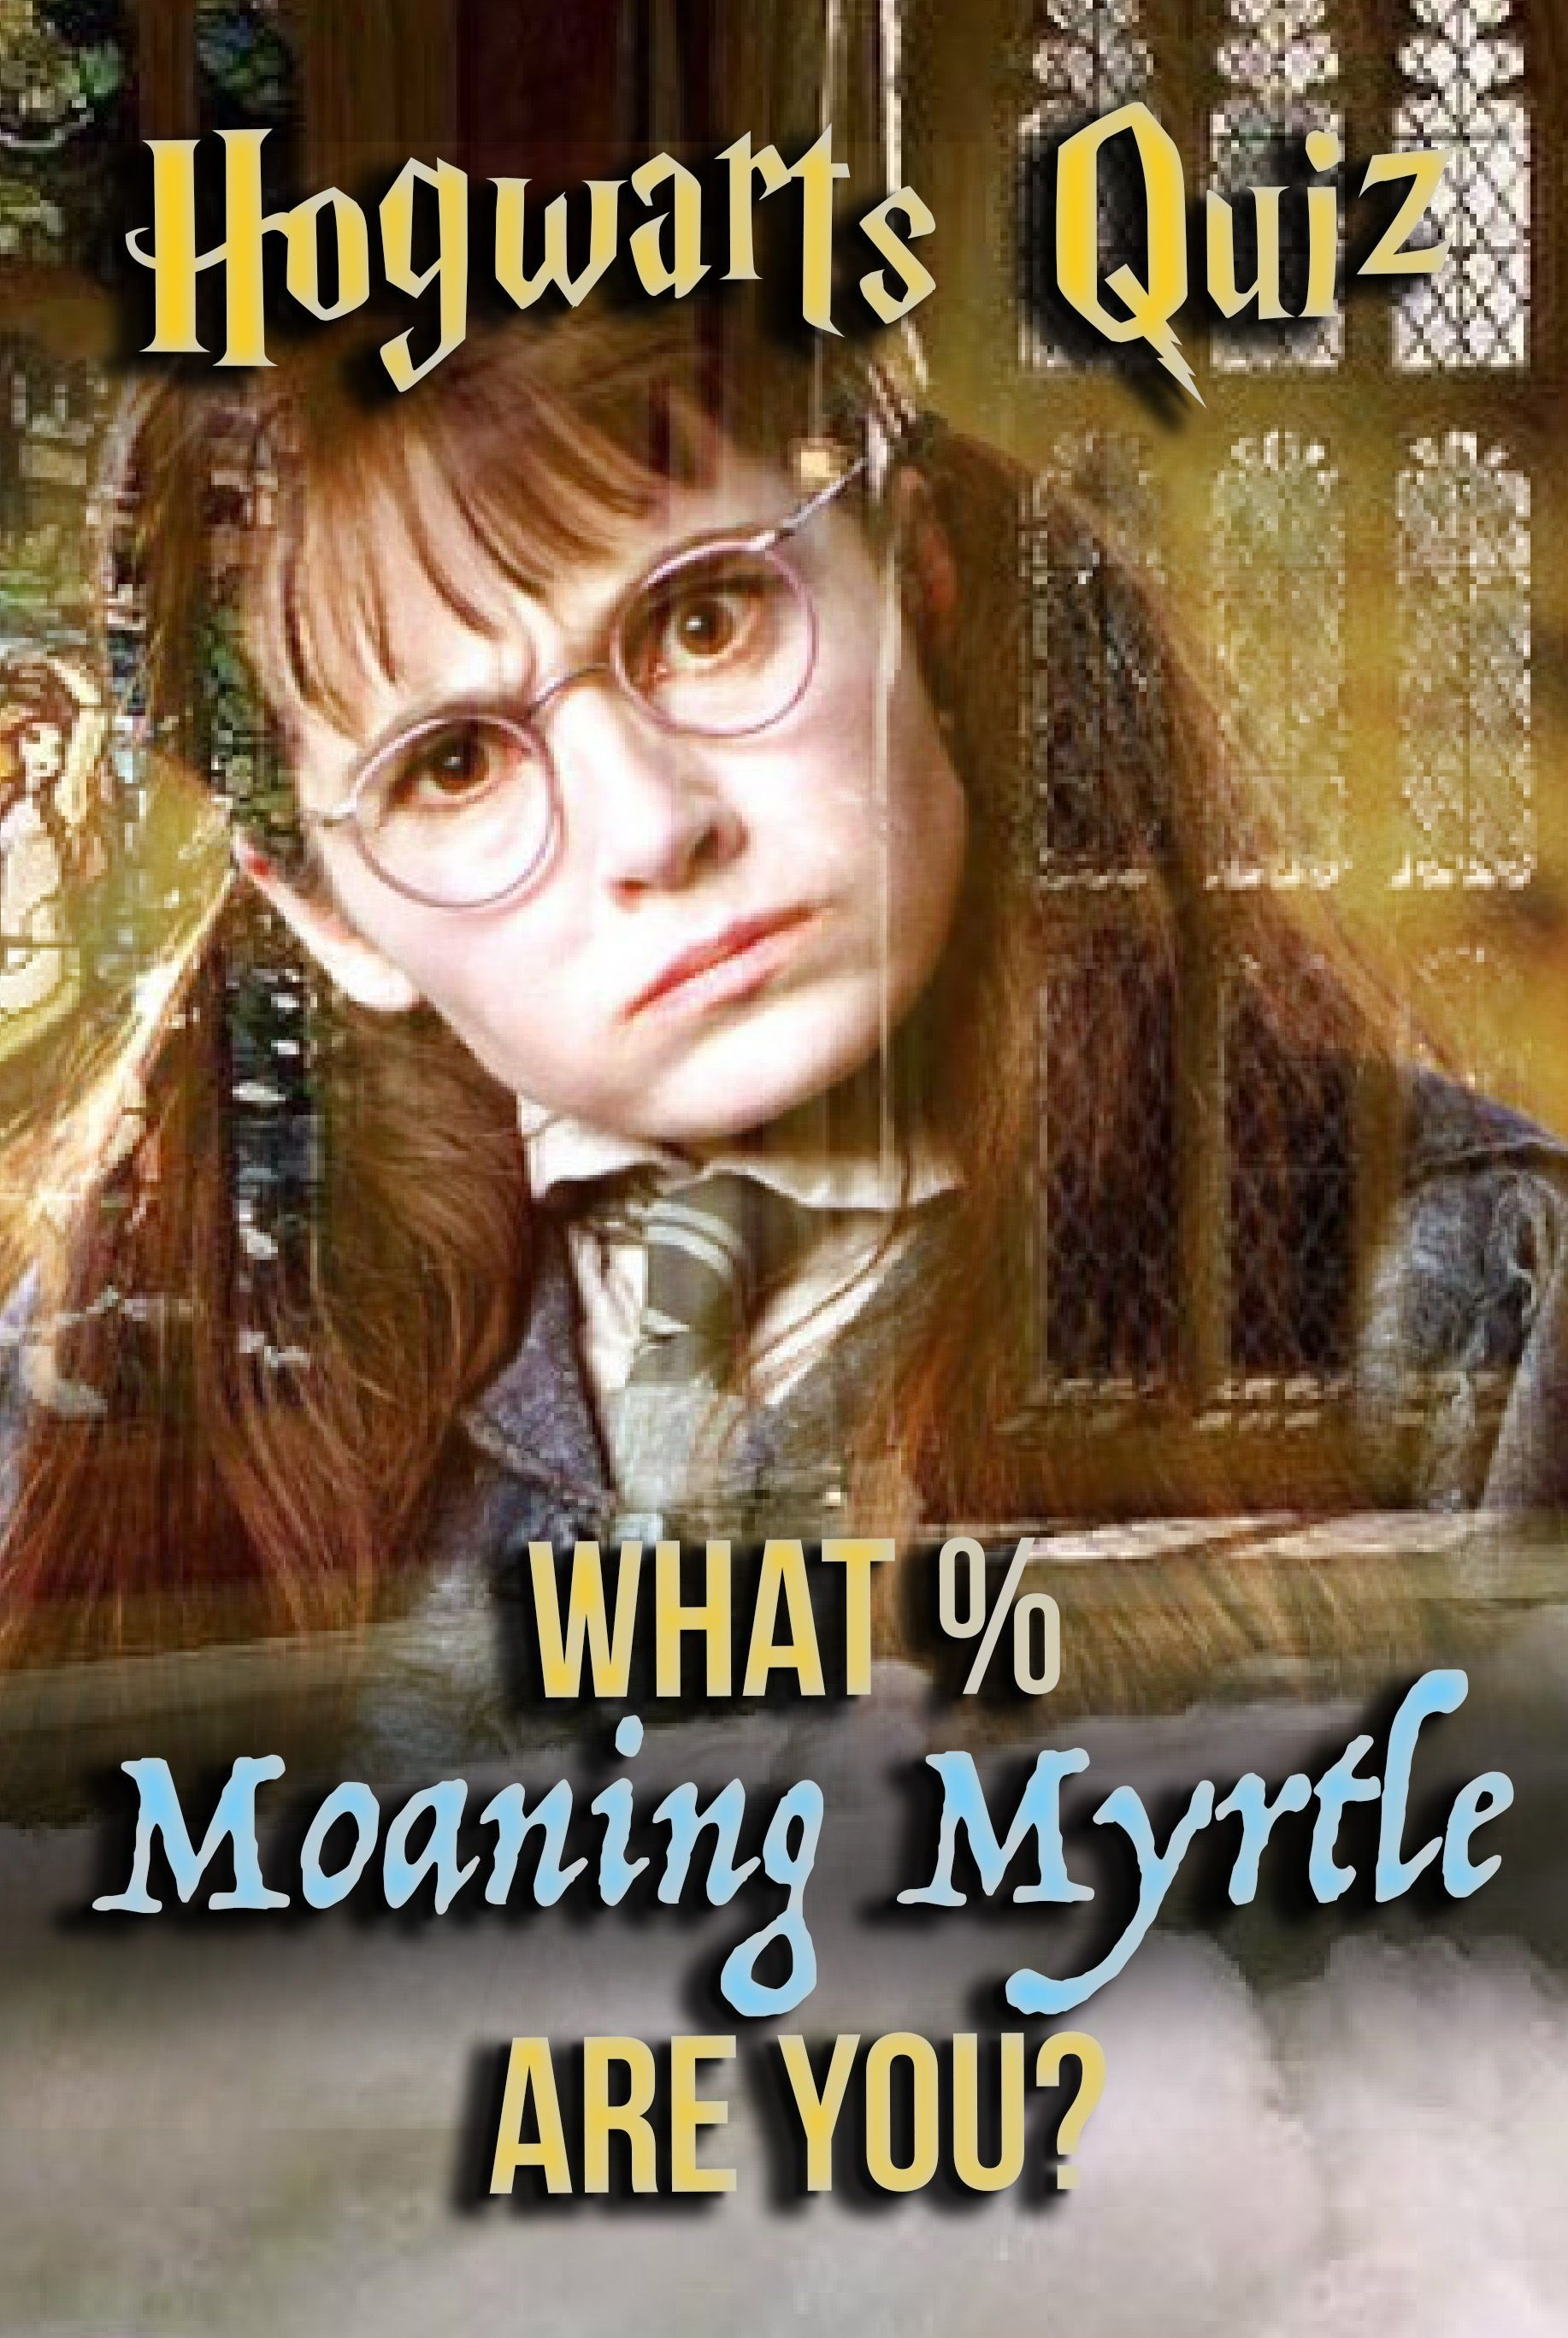 Hogwarts Quiz What Moaning Myrtle Are You